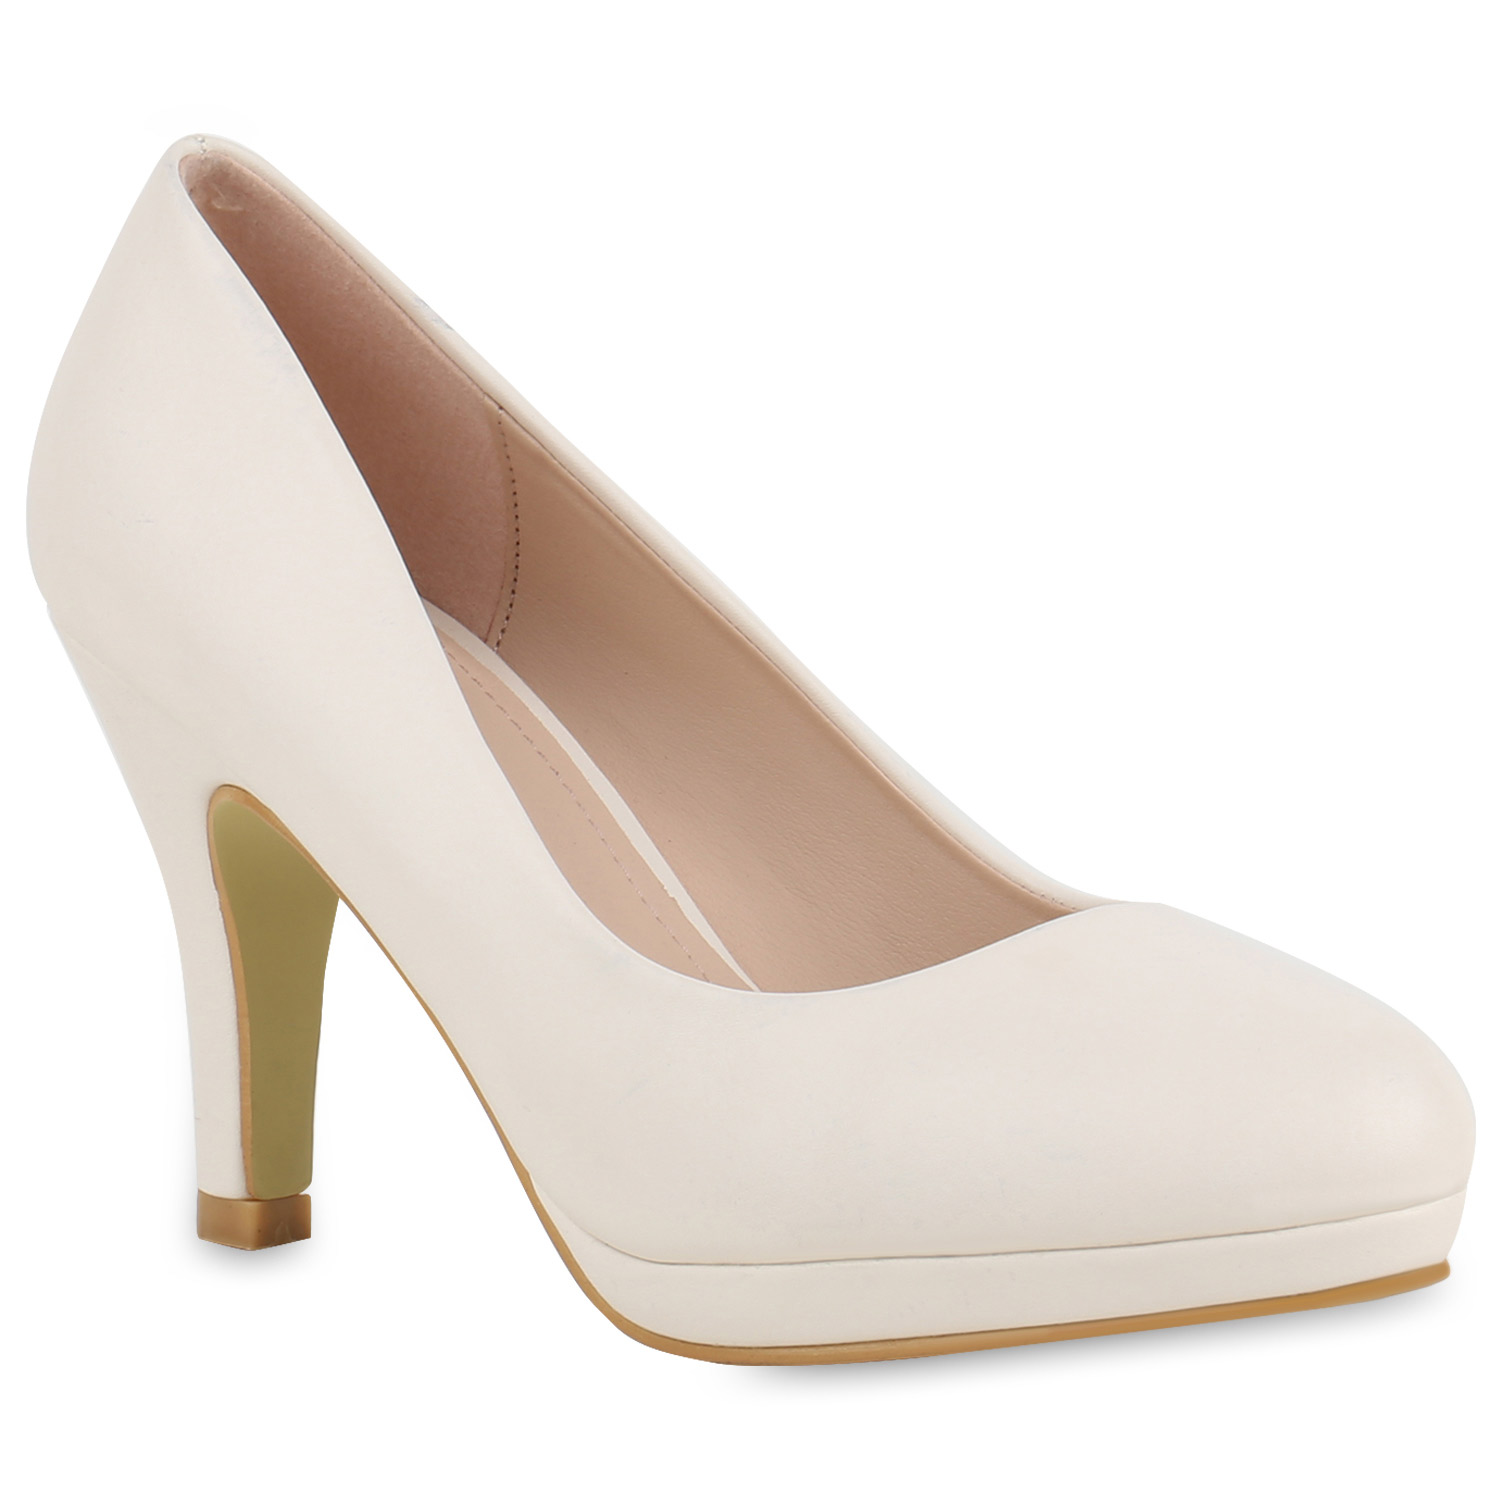 Damen Plateau Pumps - Creme